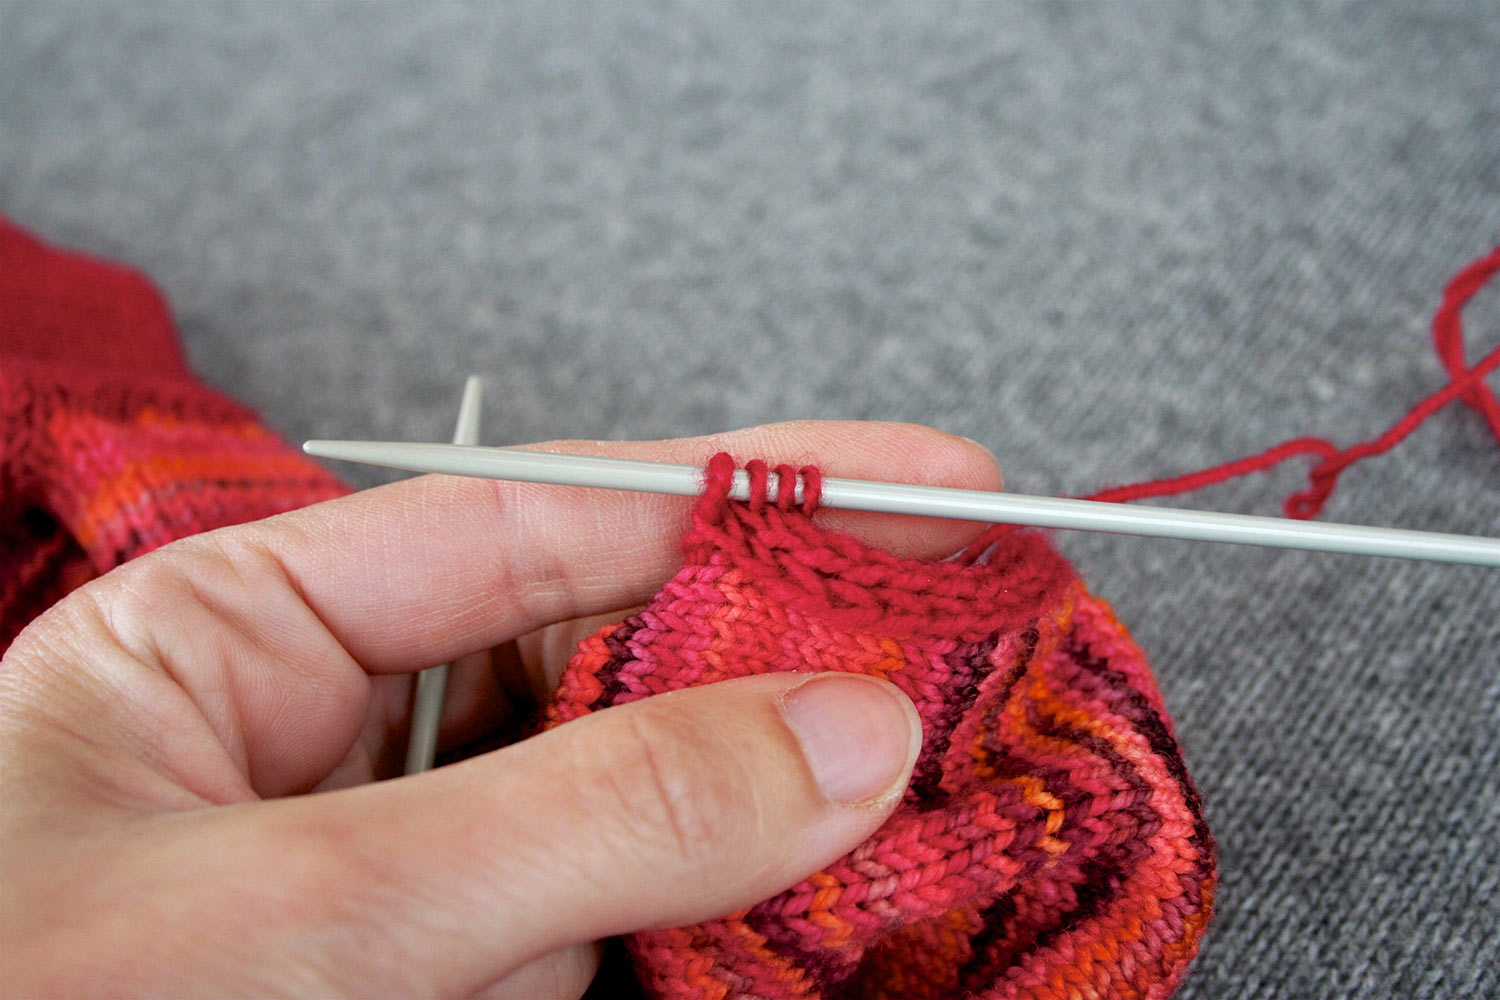 Left hand holding up knitting and showing four stitches on right needle.